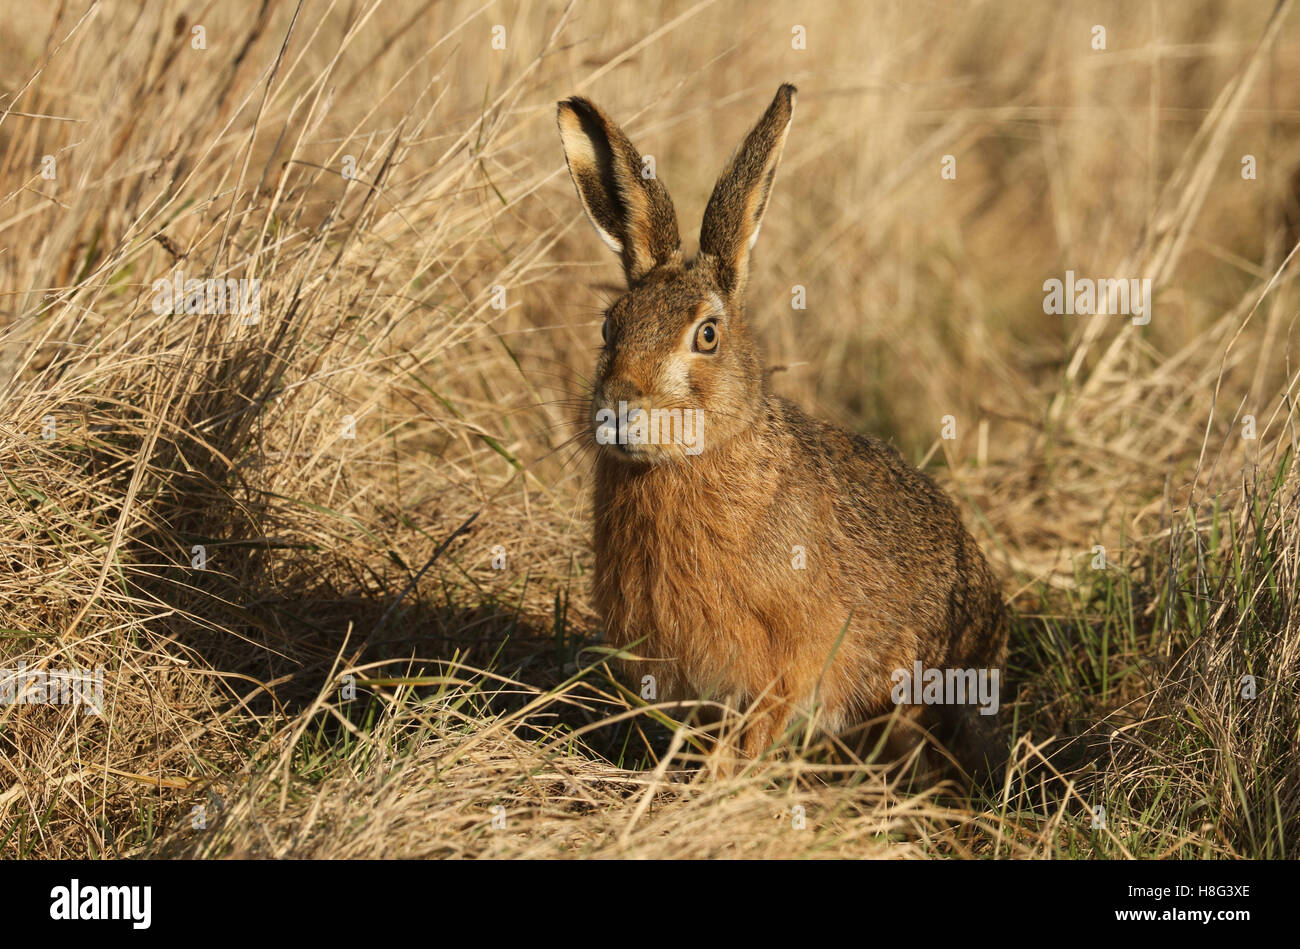 A Brown Hare (Lepus europaeus) siting in grassland. - Stock Image